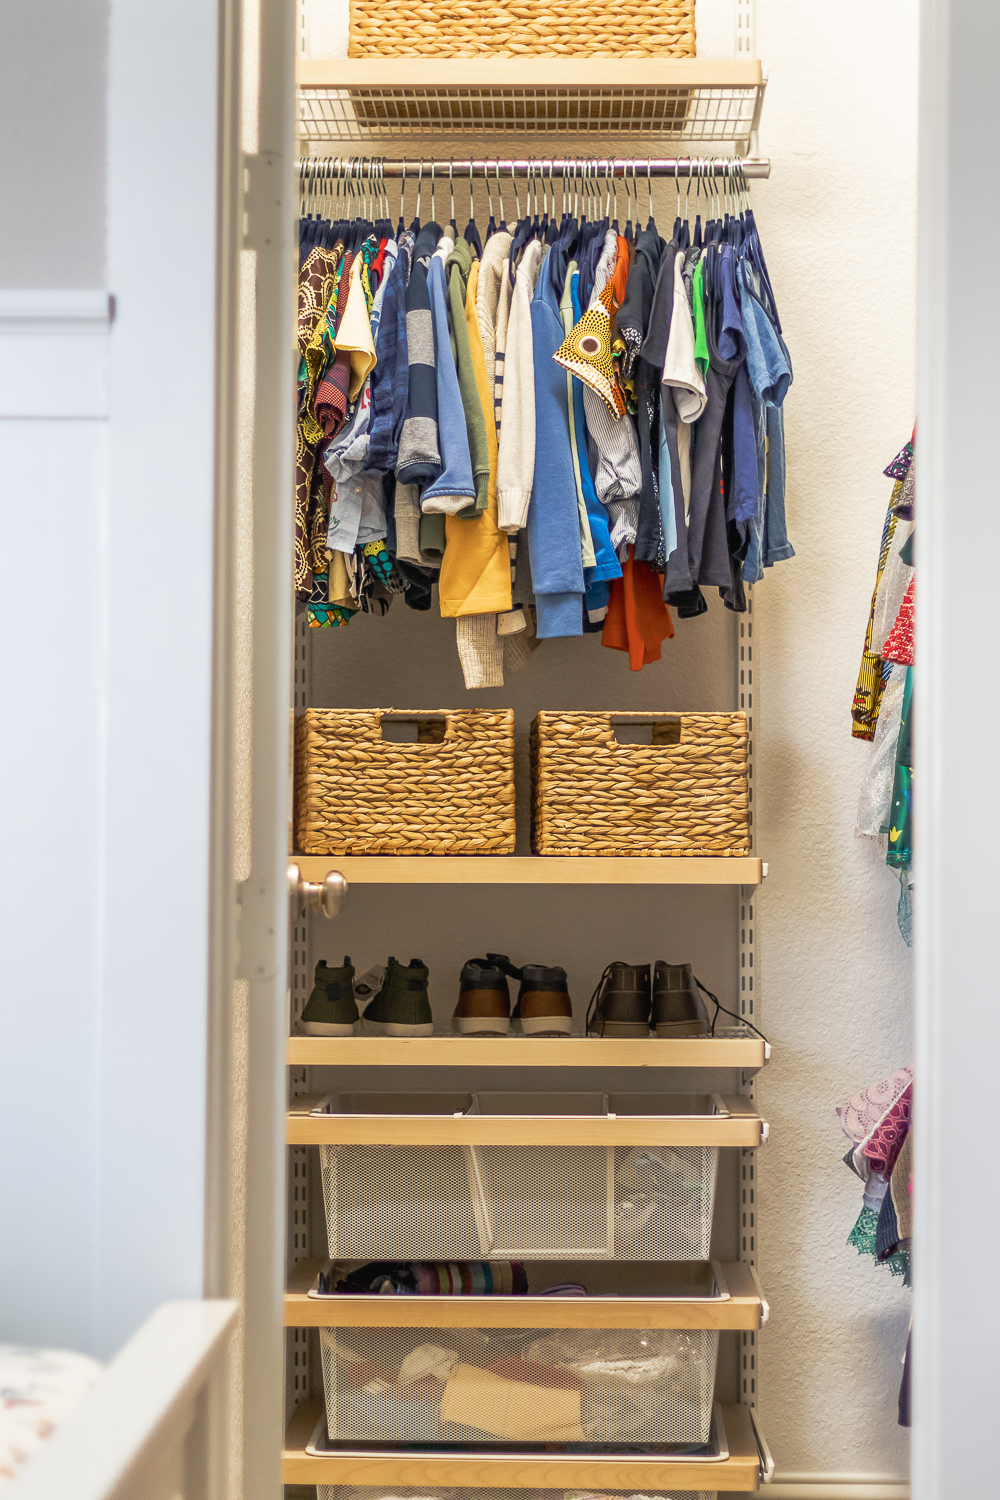 kids closet ideas - open shelves and pull out drawers with dividers